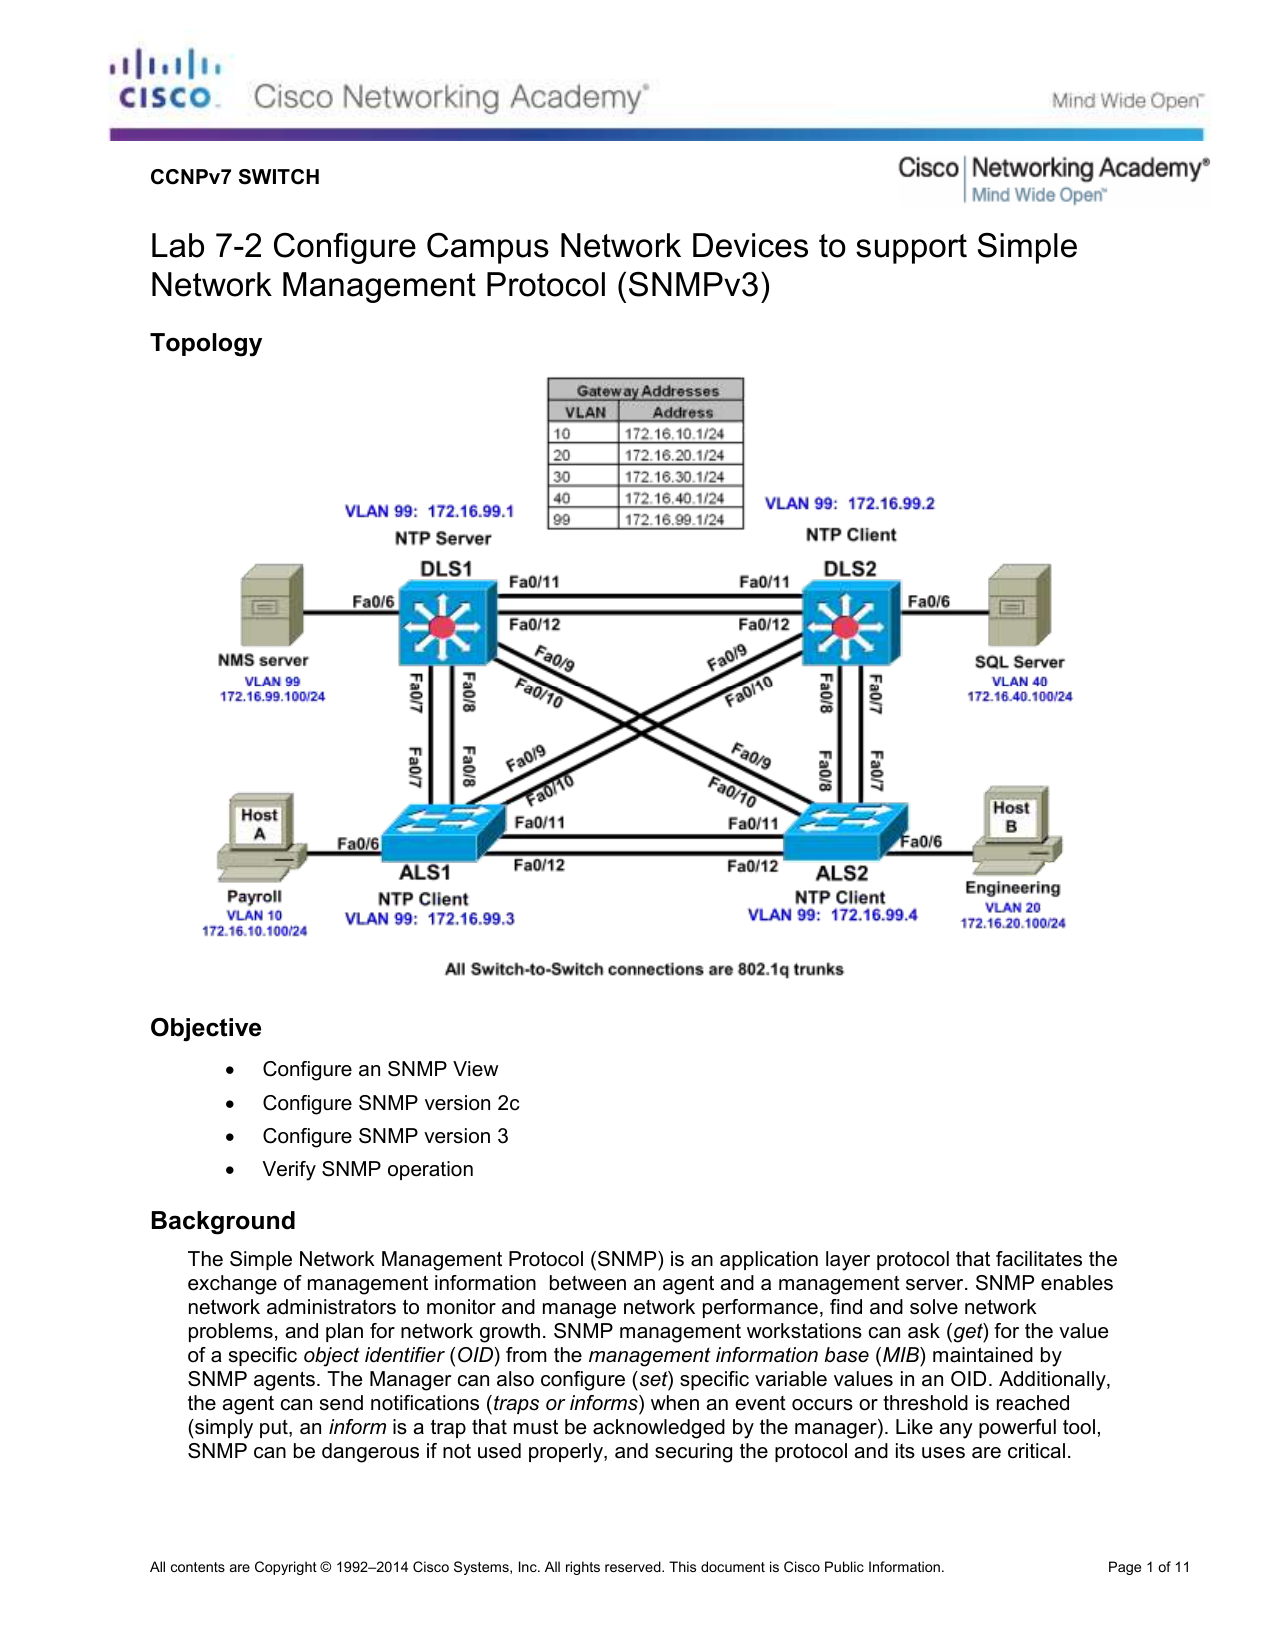 Lab 7-2 Configure Campus Network Devices to support Simple